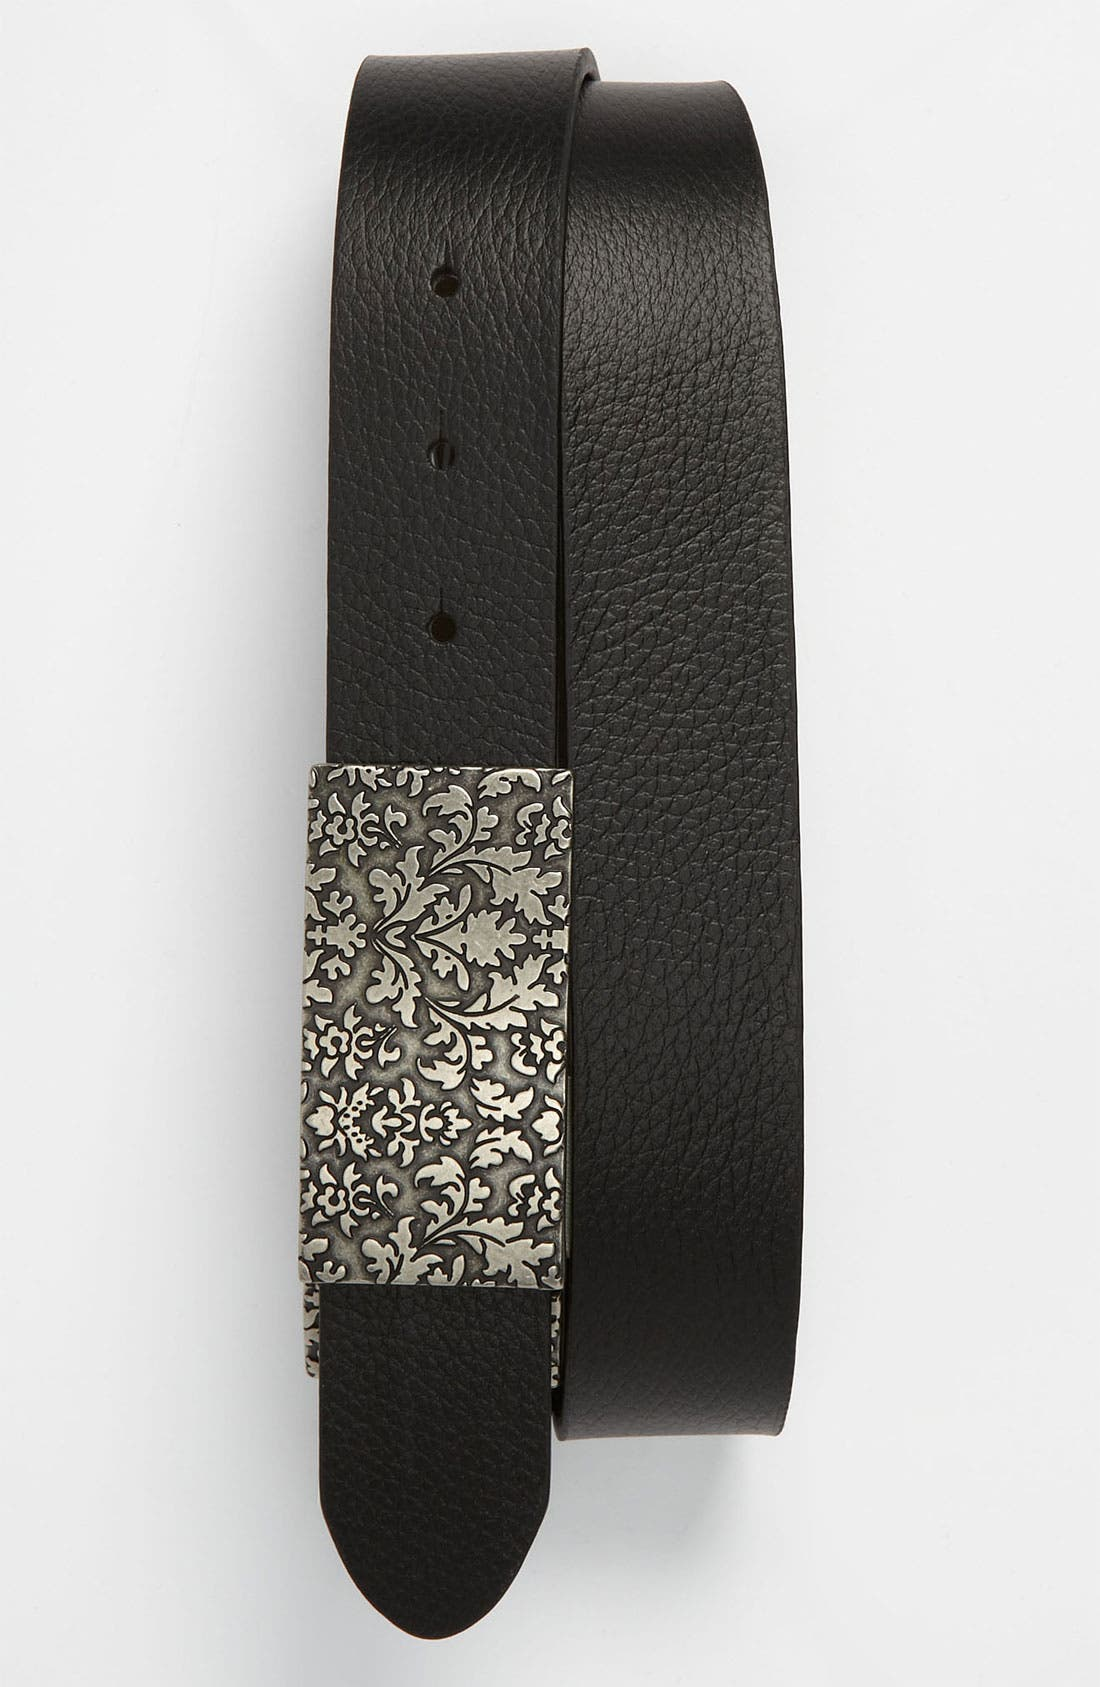 Main Image - Robert Graham 'Mathis' Reversible Leather Belt